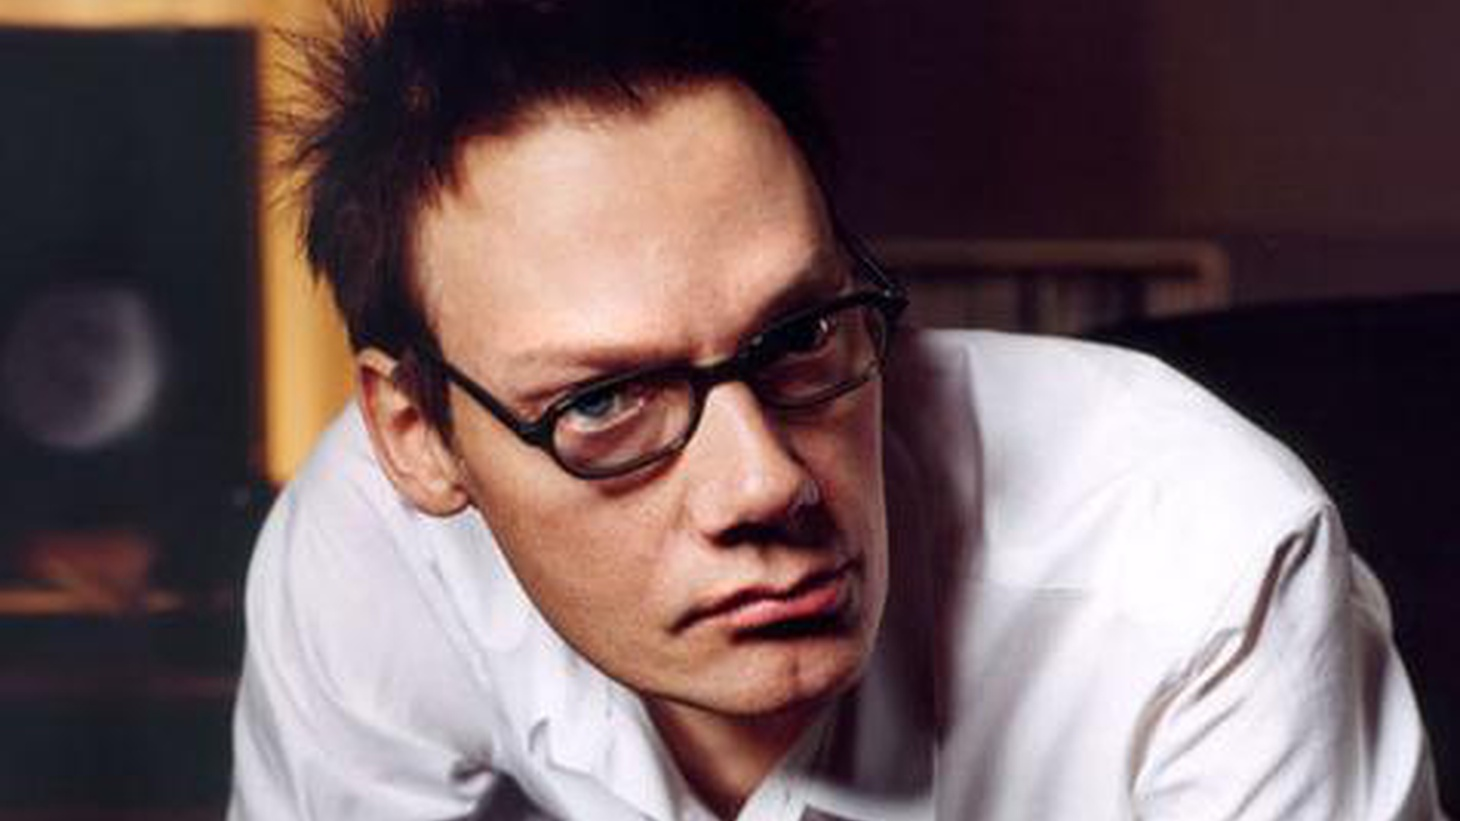 Innovative producer William Orbit, who's worked with everyone from Madonna to Beth Orton, performs for the very 1st time in the United States on Morning Becomes Eclectic at 11:15am.